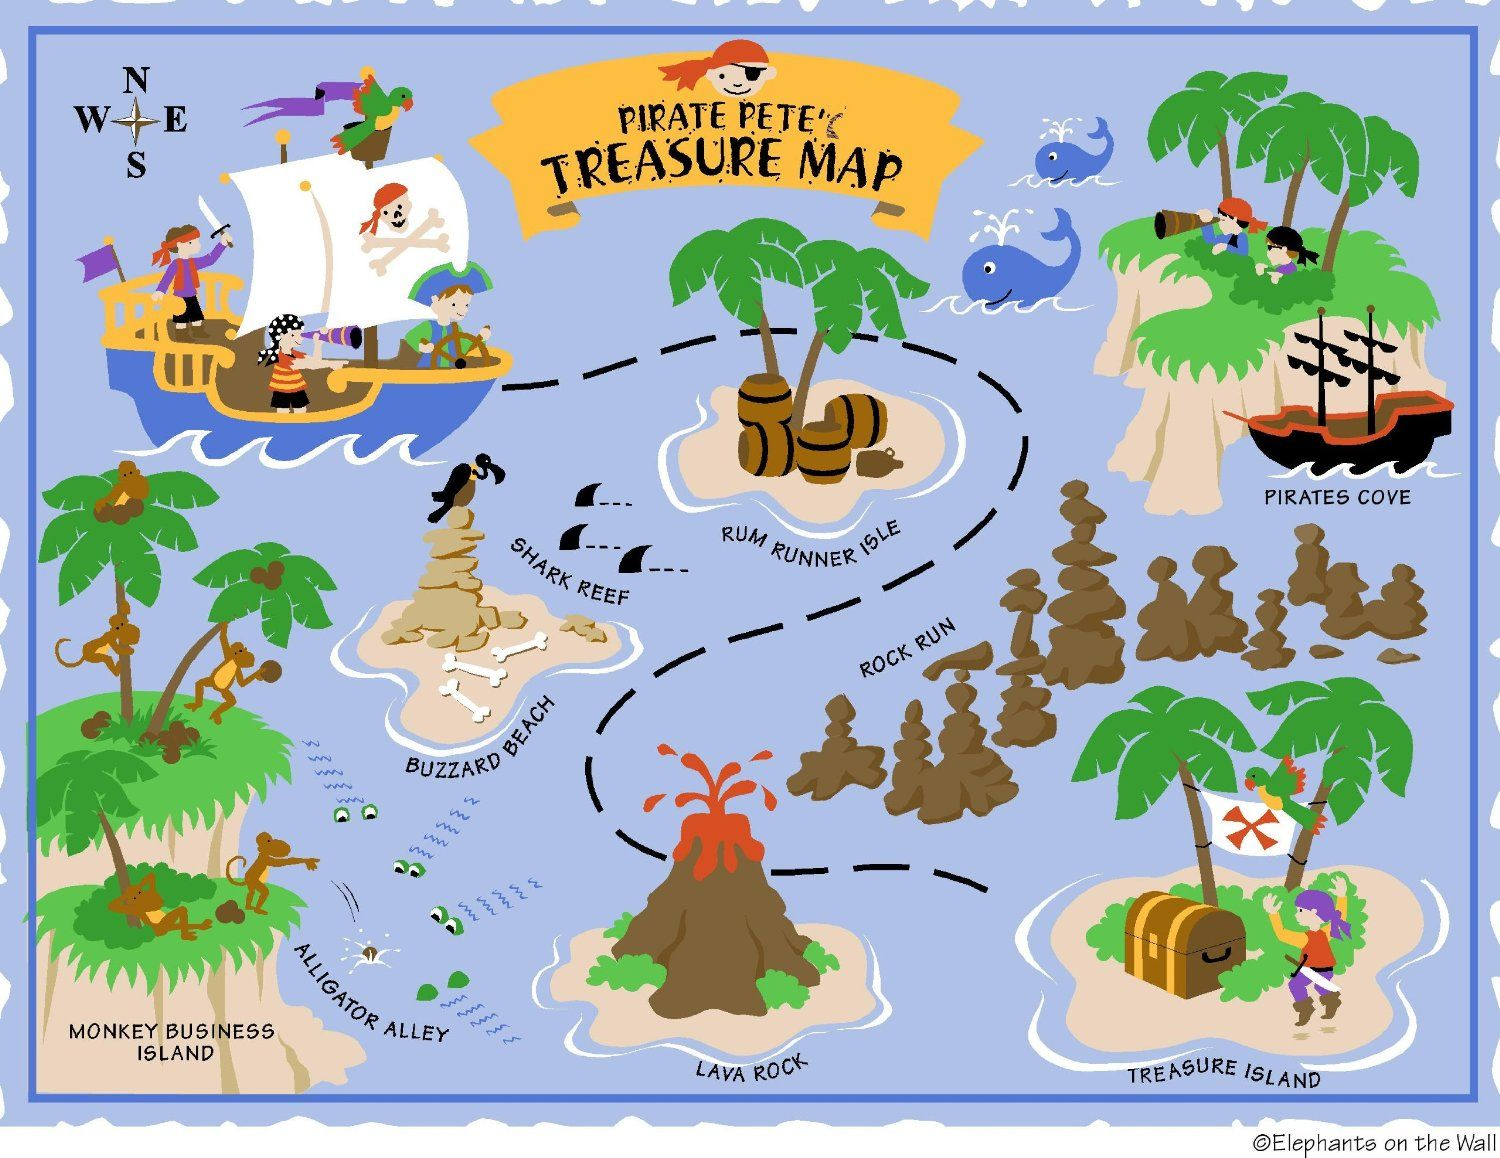 Elephants On The Wall D I Y Paint A Mural Pirate Clip Art Library Pirate Maps Pirate Treasure Maps Treasure Maps For Kids